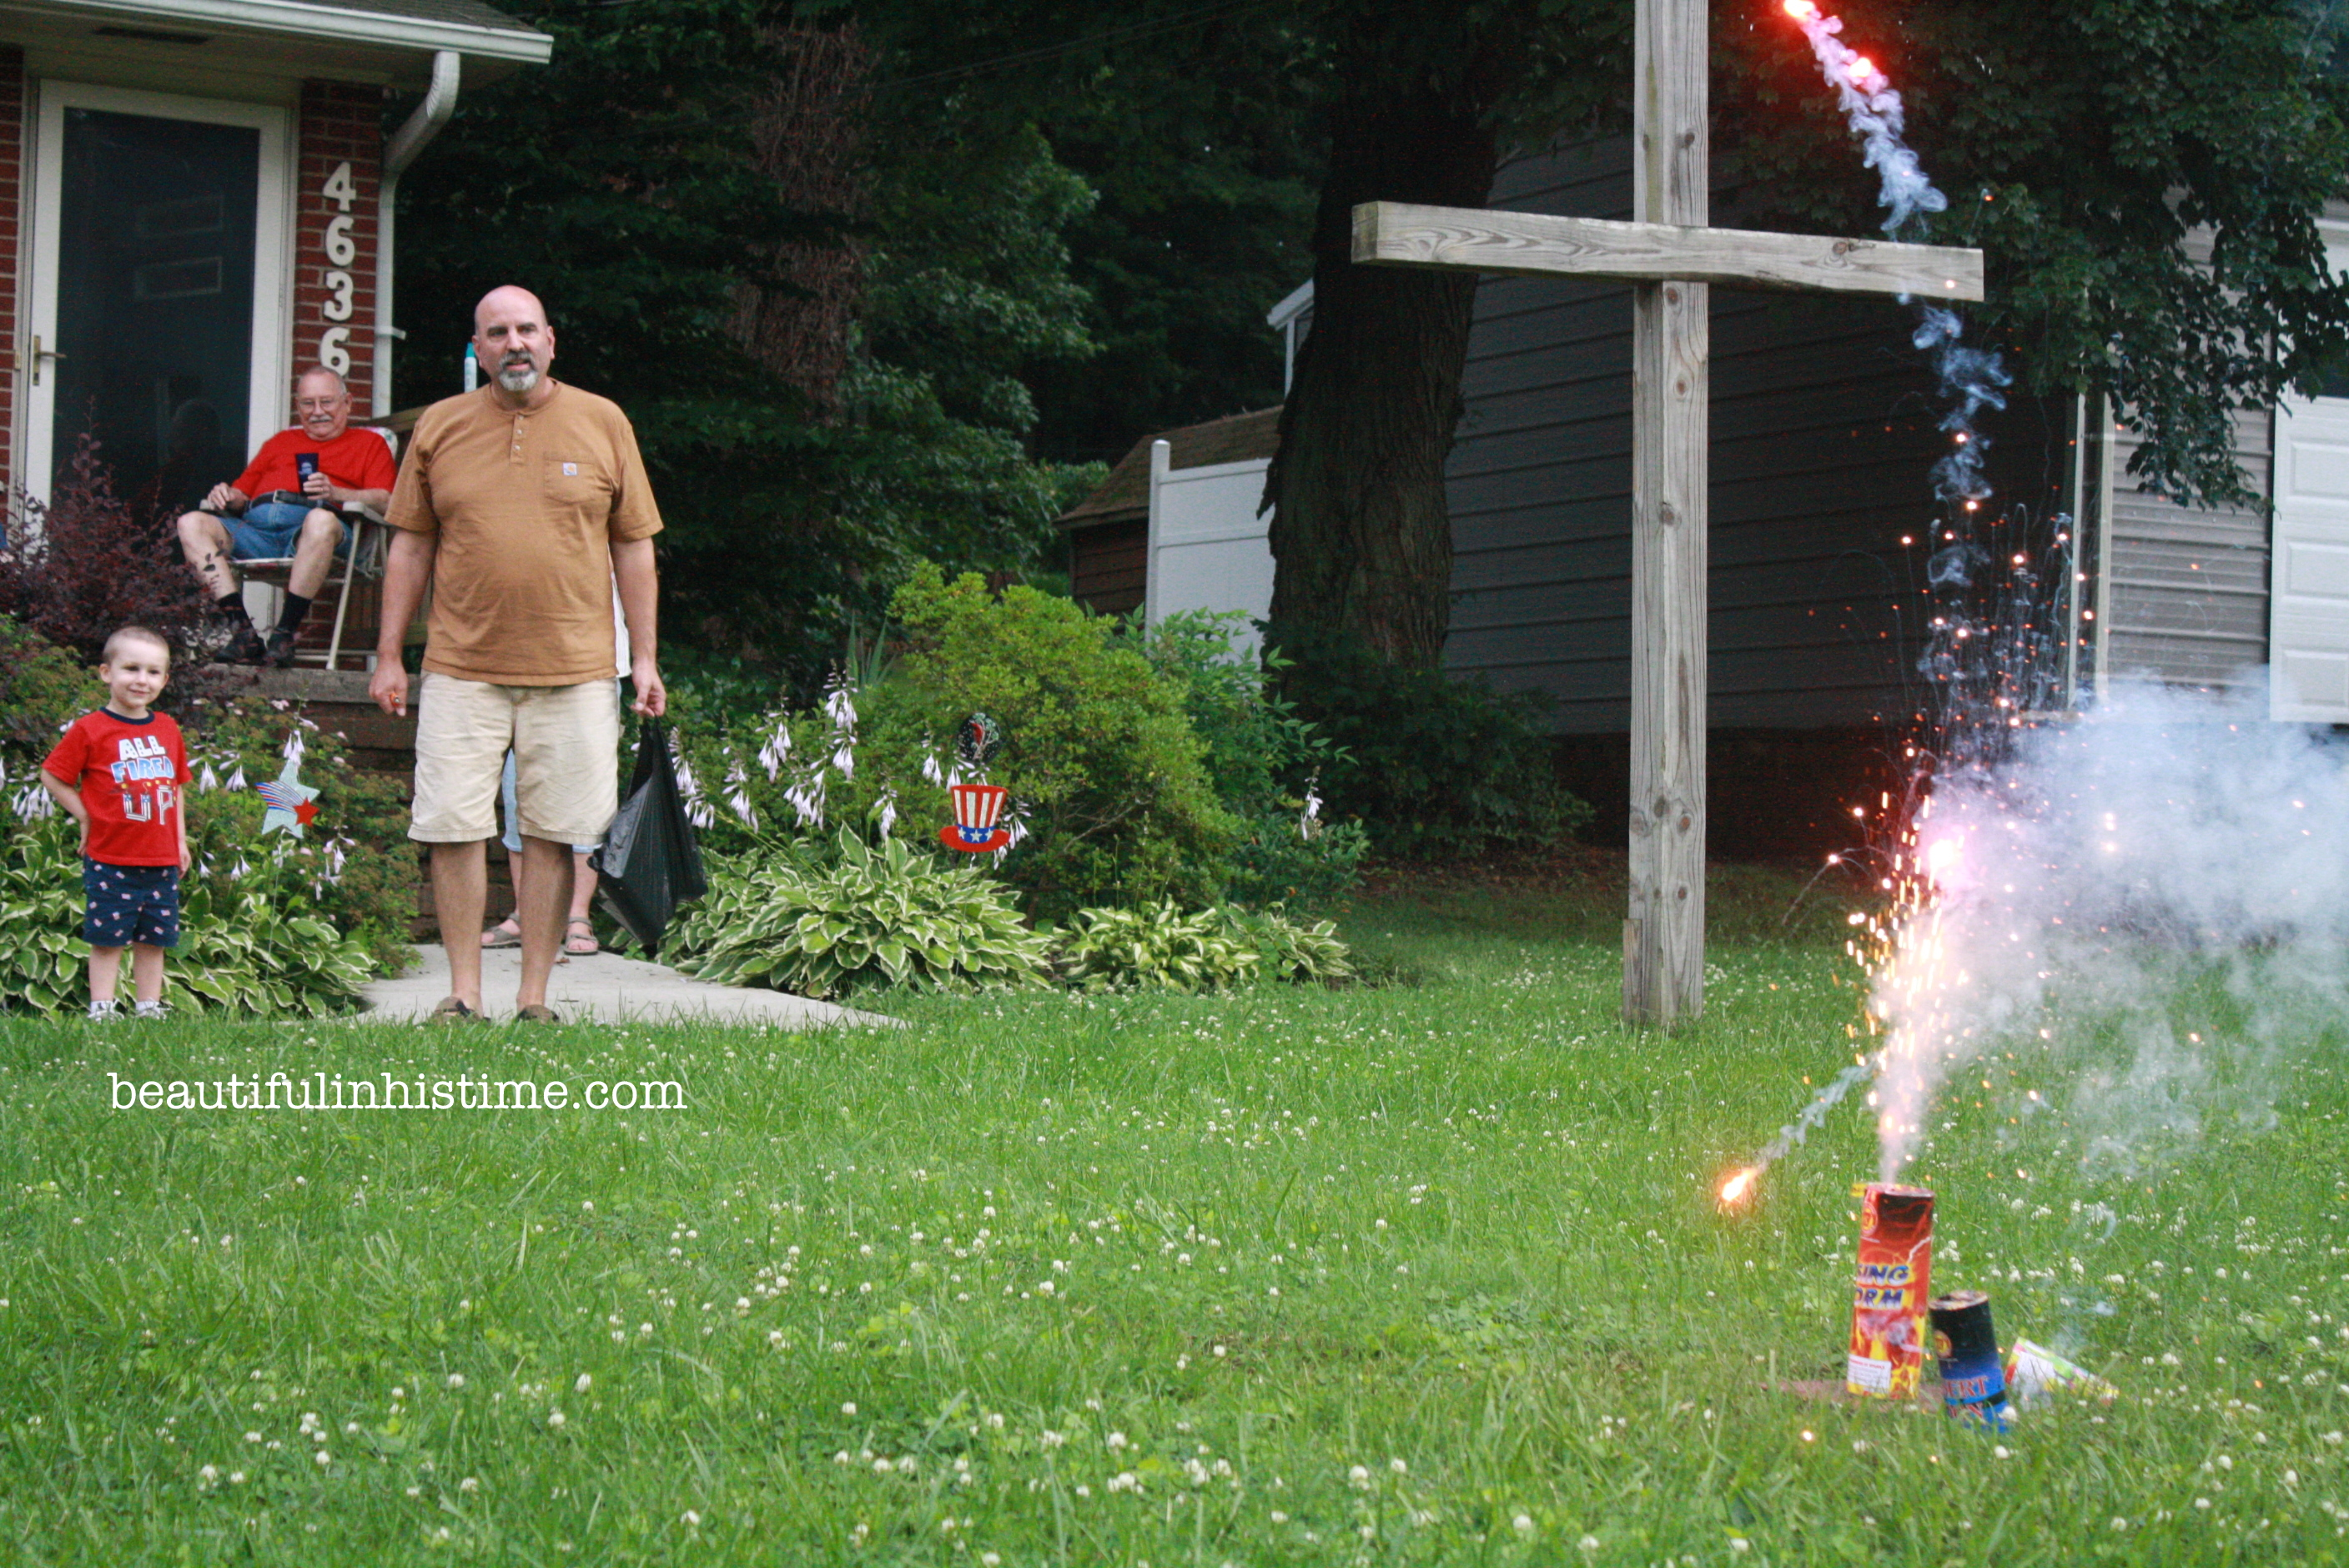 fireworks with grandpa A Birthday Party for America! #birthday #america #4thofjuly #independenceday #party #birthdayparty